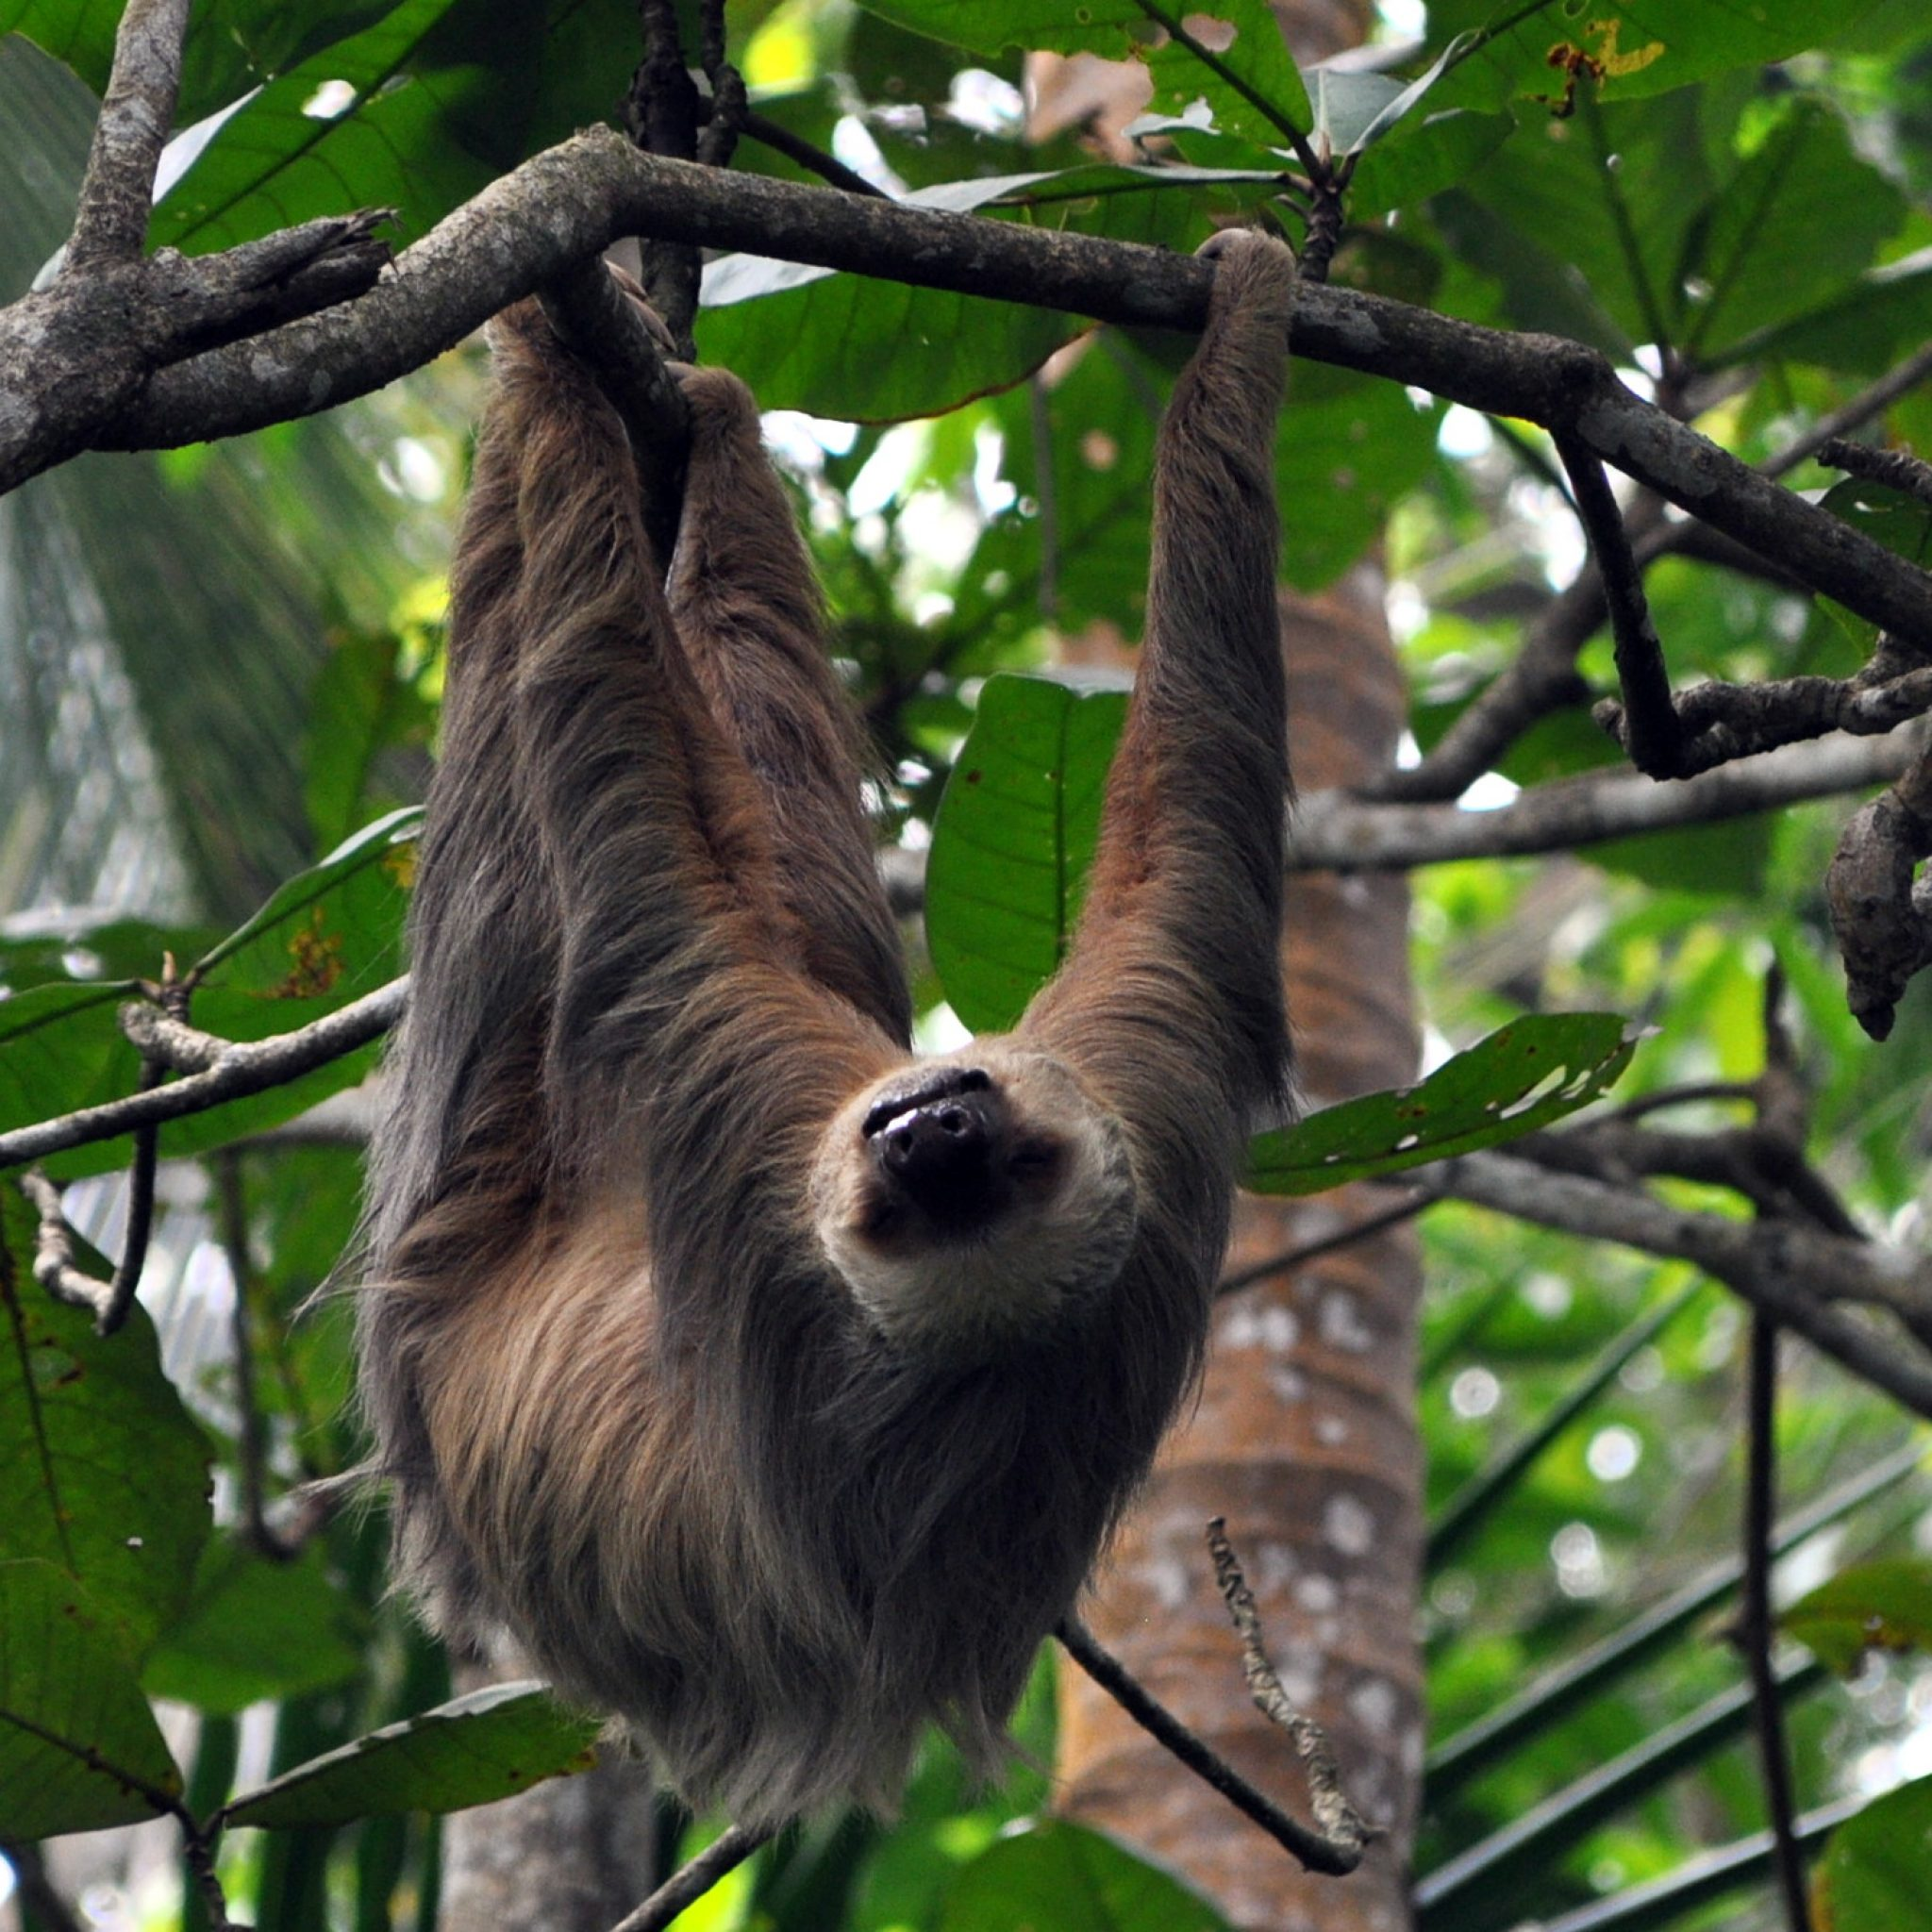 Costa Rica is blessed with stunning natural beauty and an incredible array of wildlife.